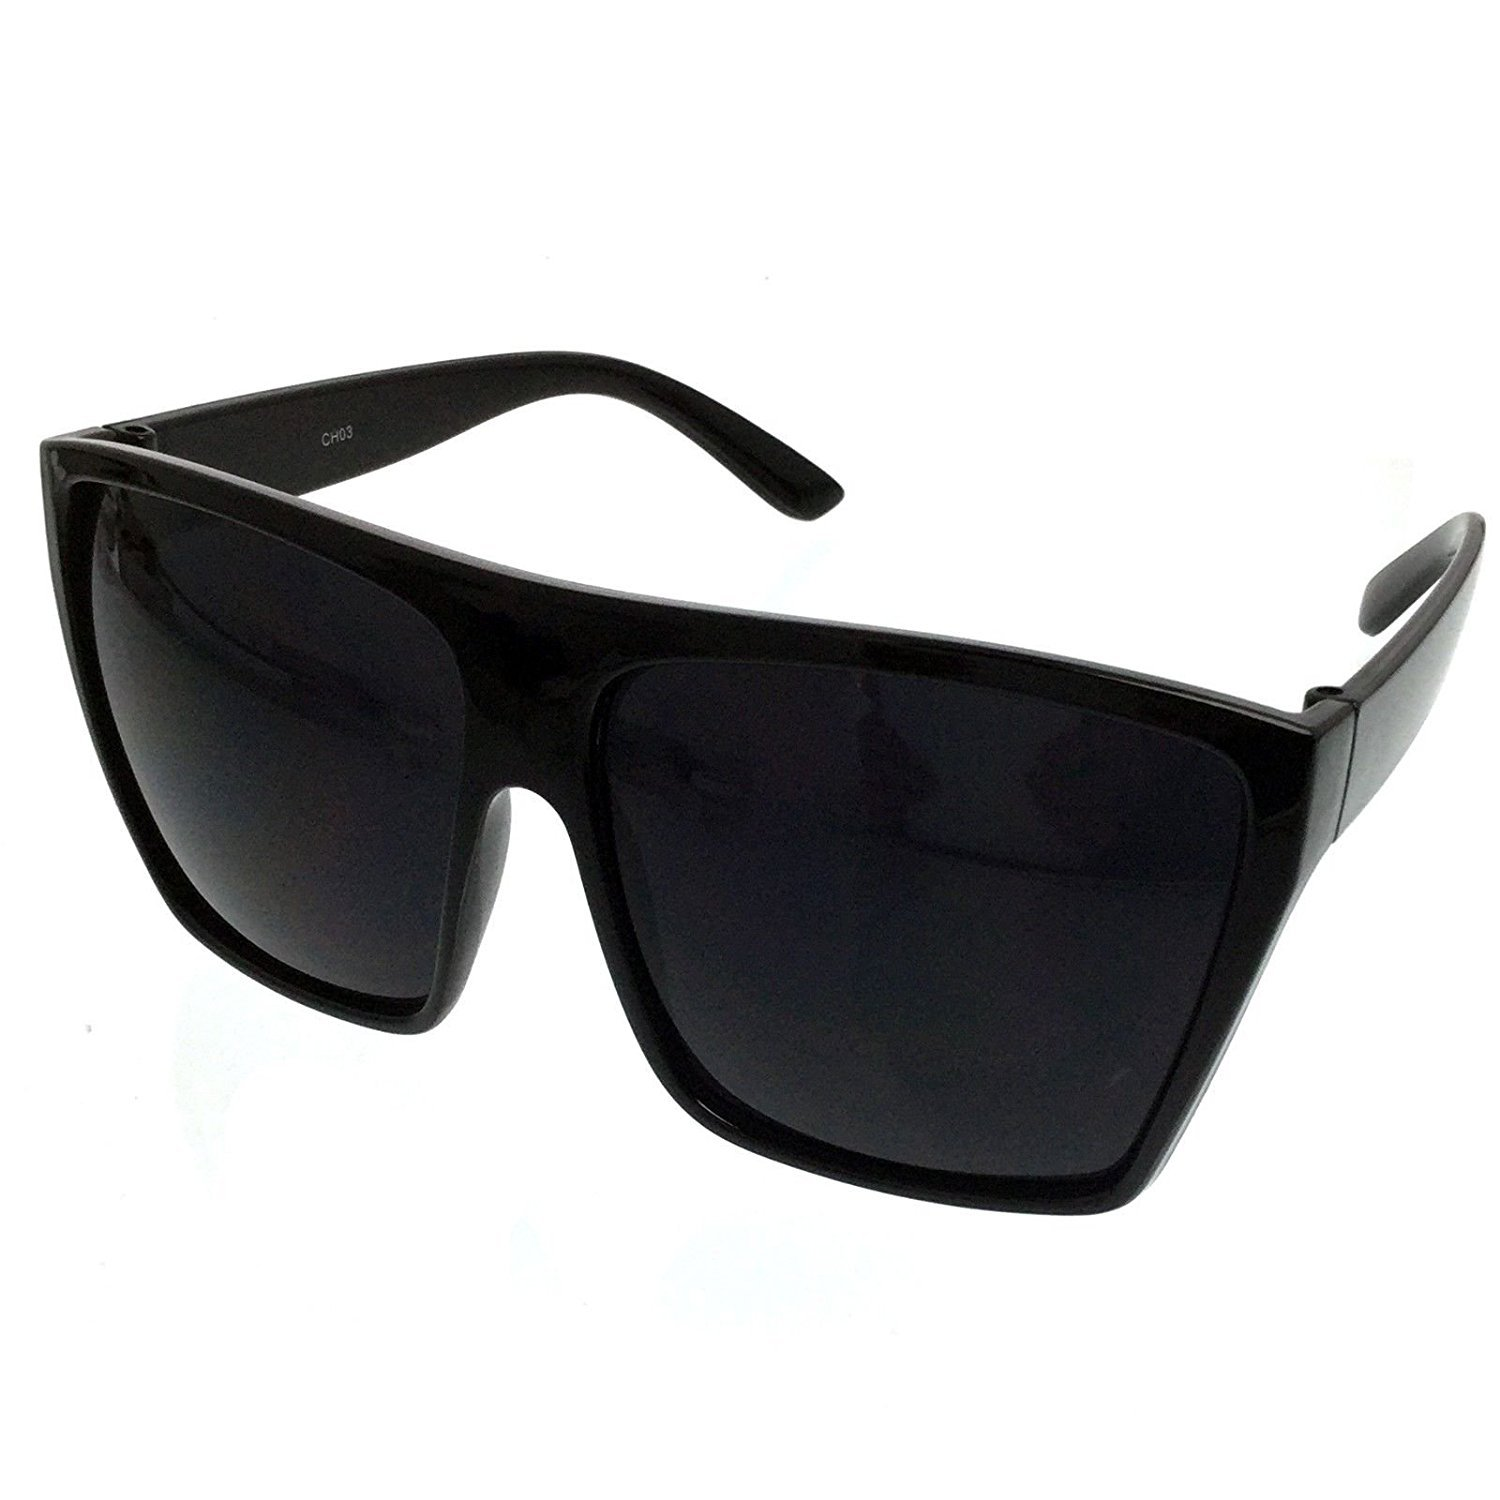 All Black Flat Top Oversized Square Kim Sunglasses (All Black, Black)